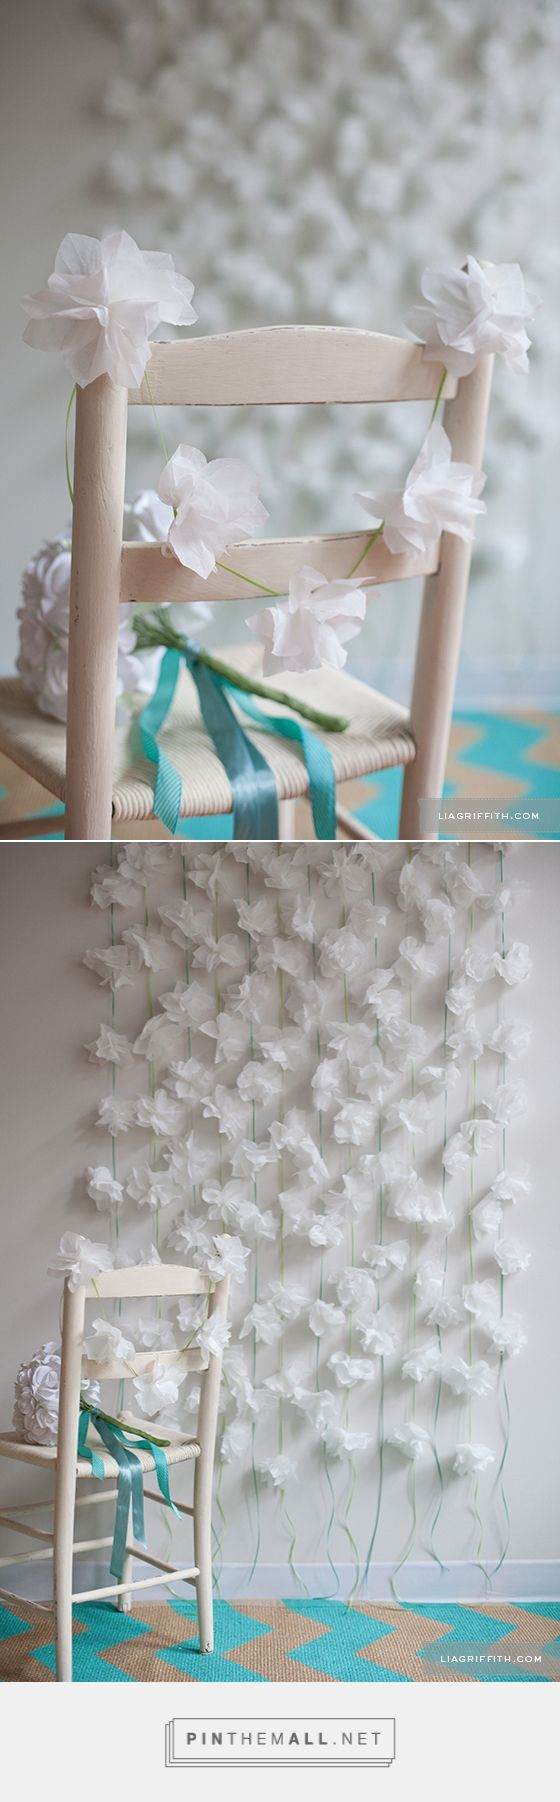 Cocktail Napkin Flower Garland. For more ideas, inspiration and free printable check out www.liagriffith.com